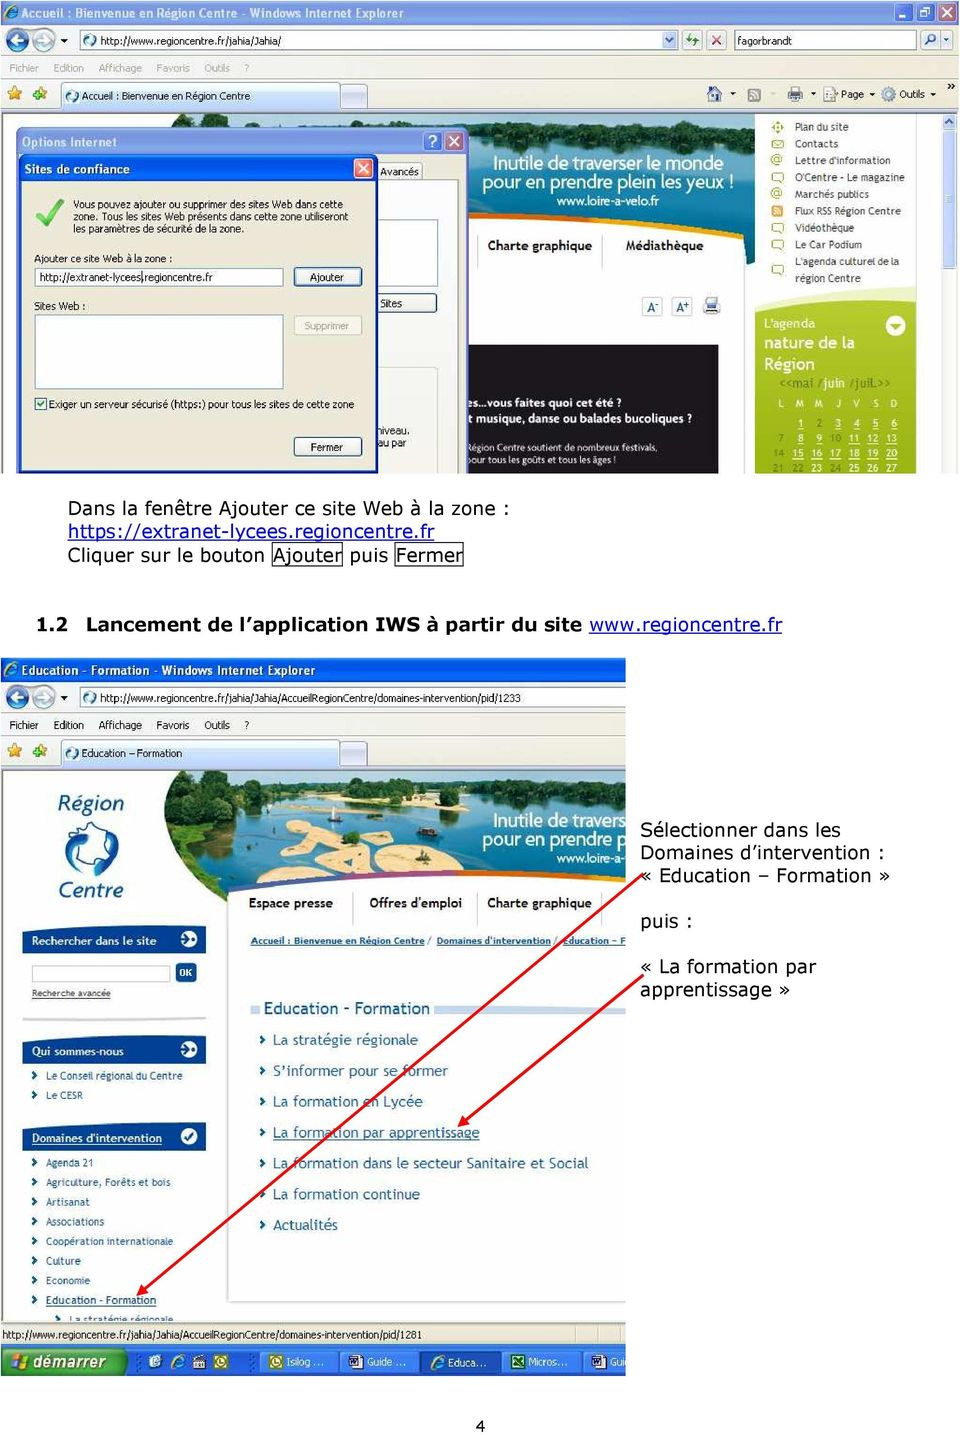 2 Lancement de l application IWS à partir du site www.regioncentre.